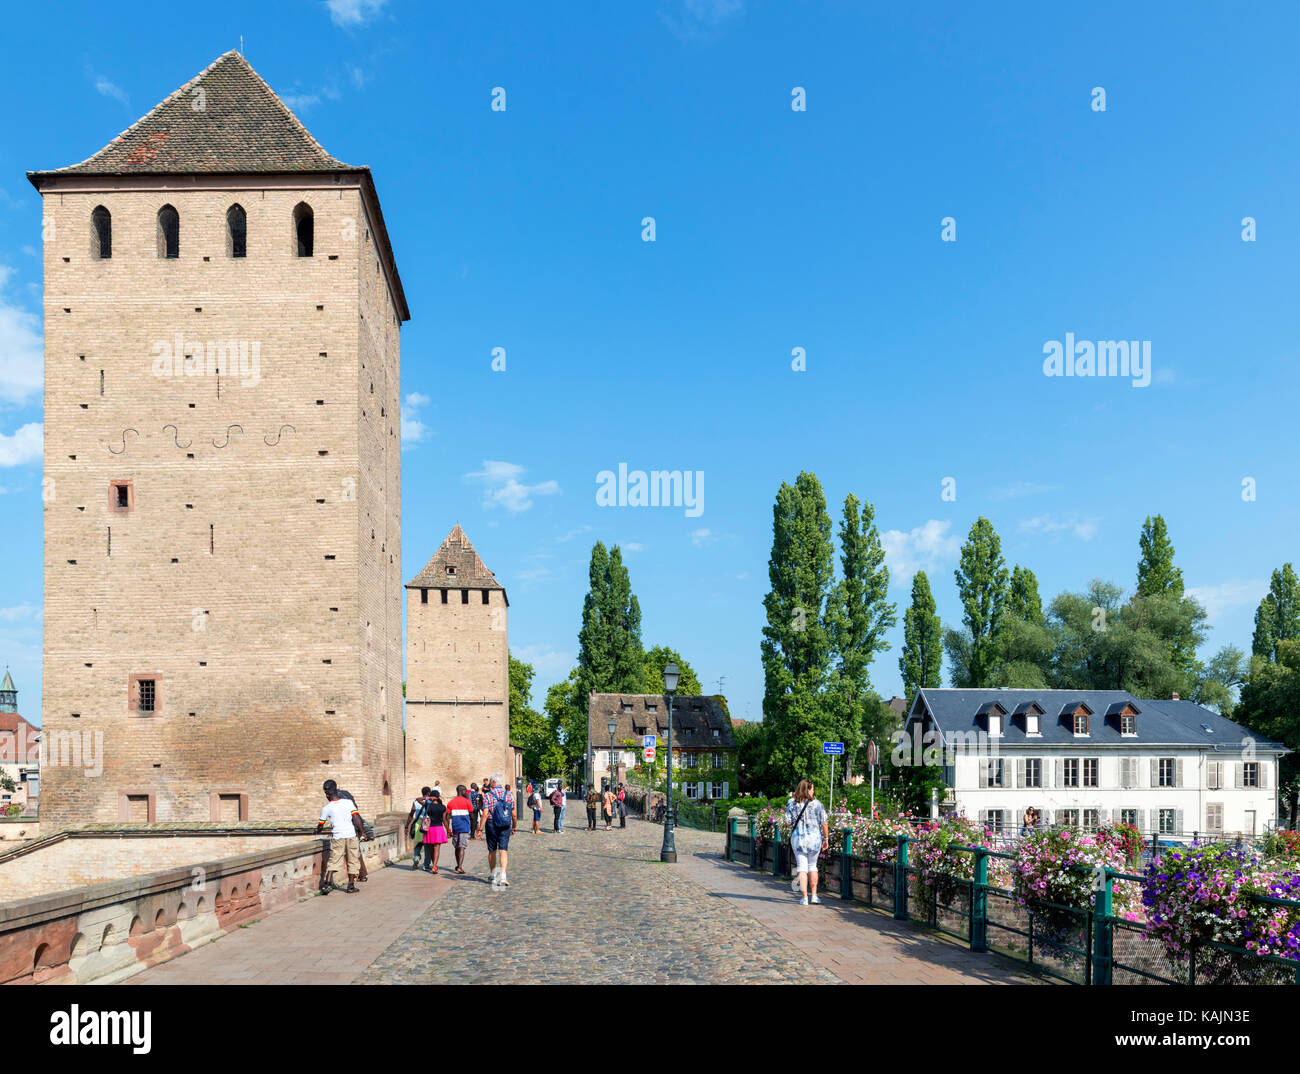 The historic 13th century Ponts Couverts over the River Ill, Petite France district, Strasbourg, Alsace, France - Stock Image